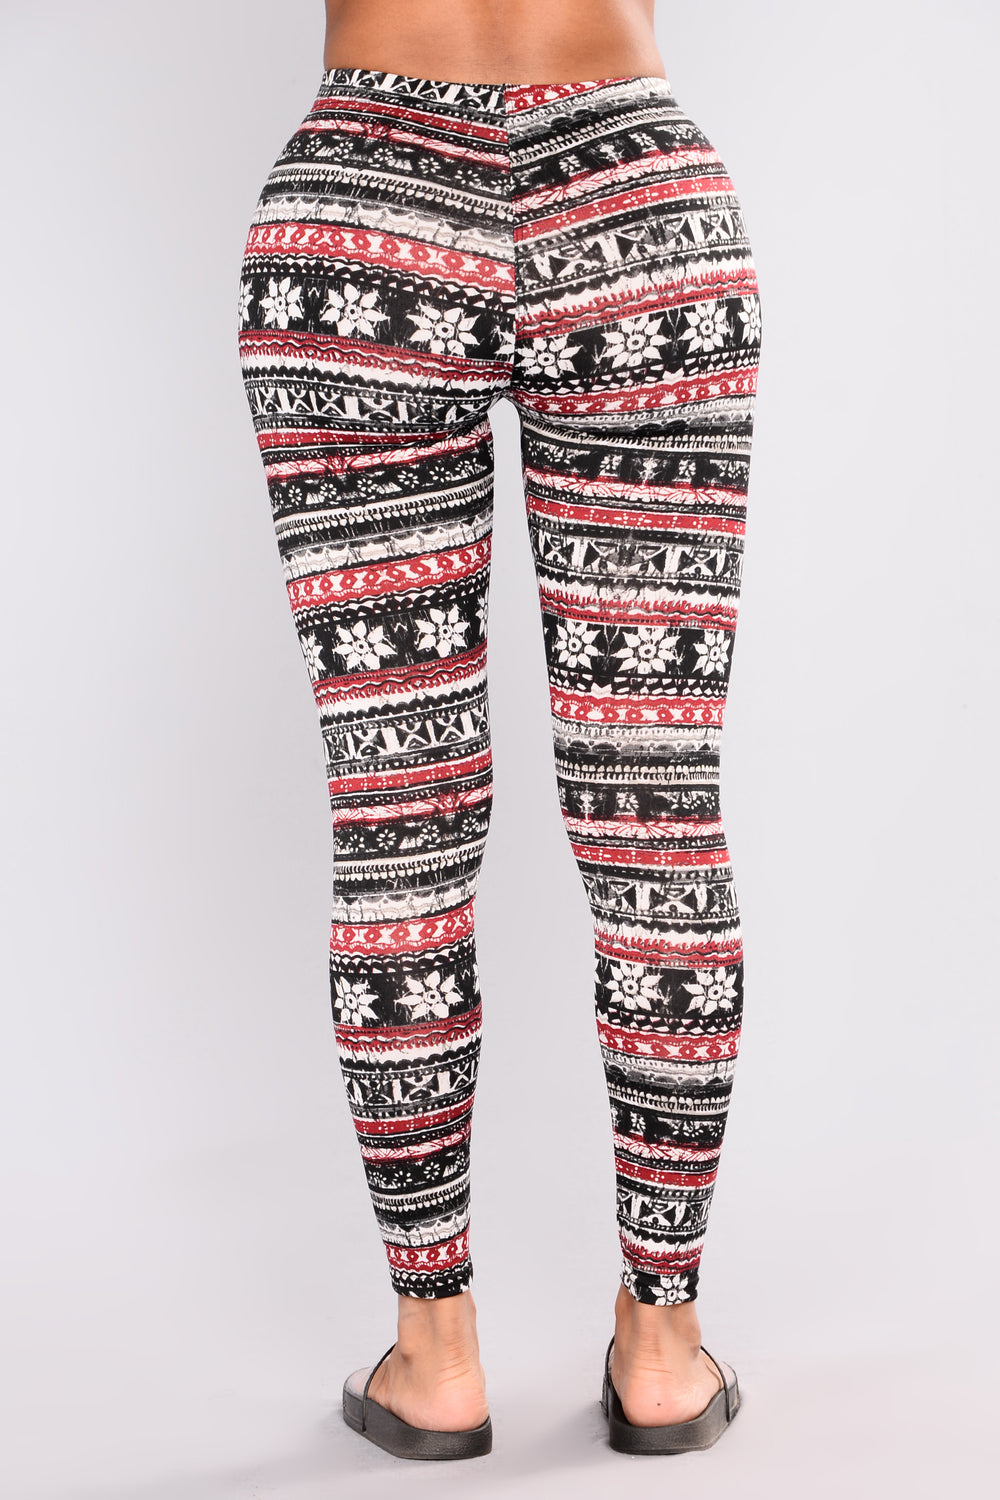 Shanaya Fleece Lined Print Leggings - Multi